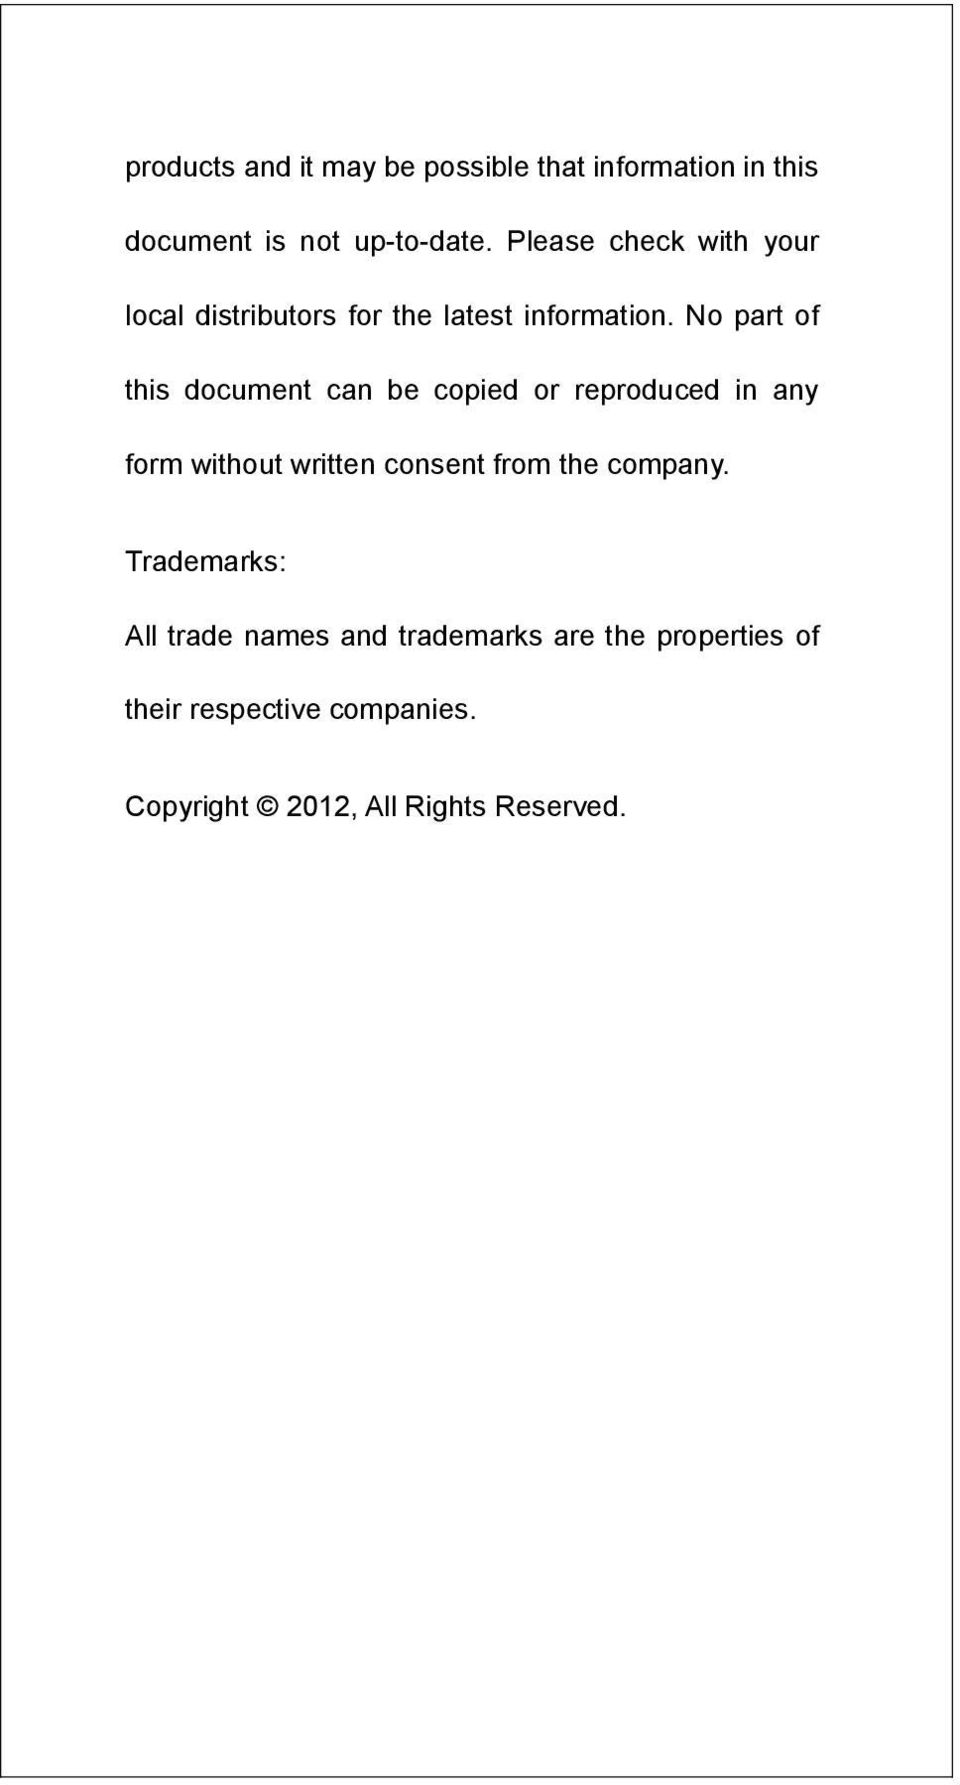 No part of this document can be copied or reproduced in any form without written consent from the